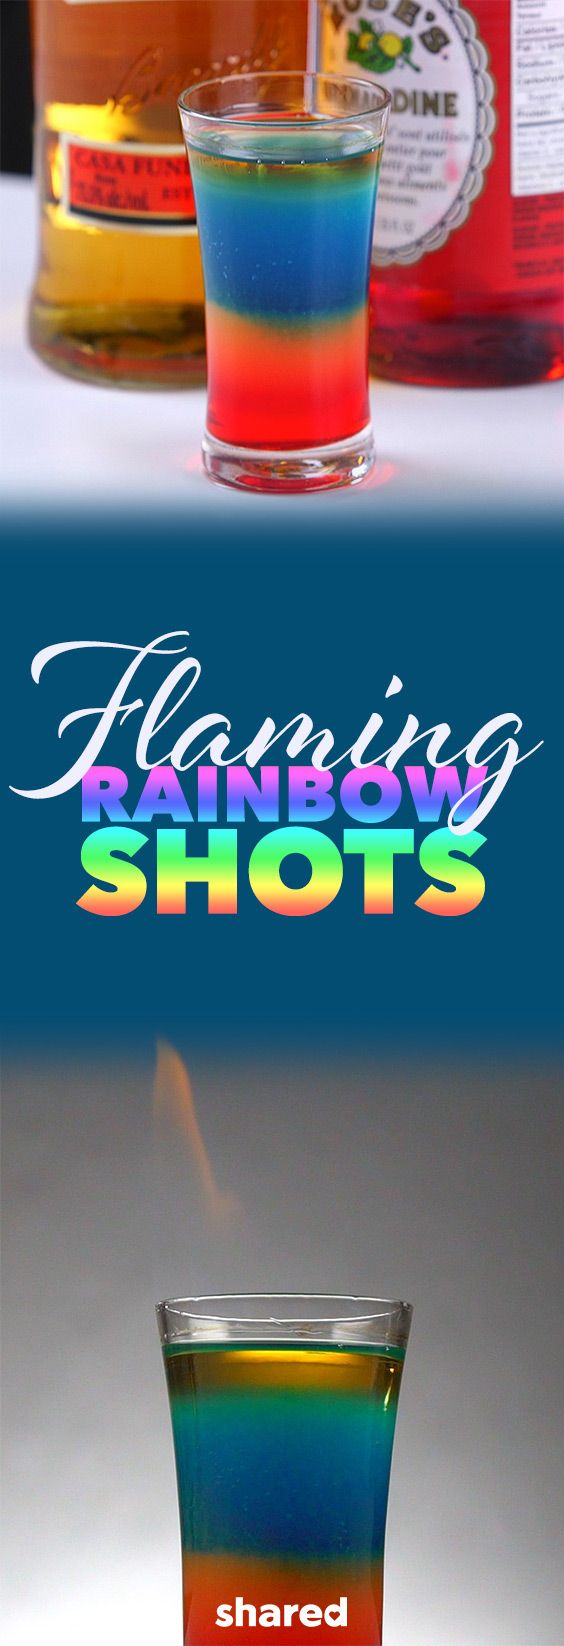 Flaming Rainbow Shots - If you like living life on the wild side, you'll love this shot! The Flaming Rainbow Shot is beautifully made with cool differently colored layers, and finally a flame tops it all off! It's really rather easy to make this shot at home with just a few yummy ingredients. Use caution when it comes to the flame, and you'll soon be drinking the coolest shots you ever made!